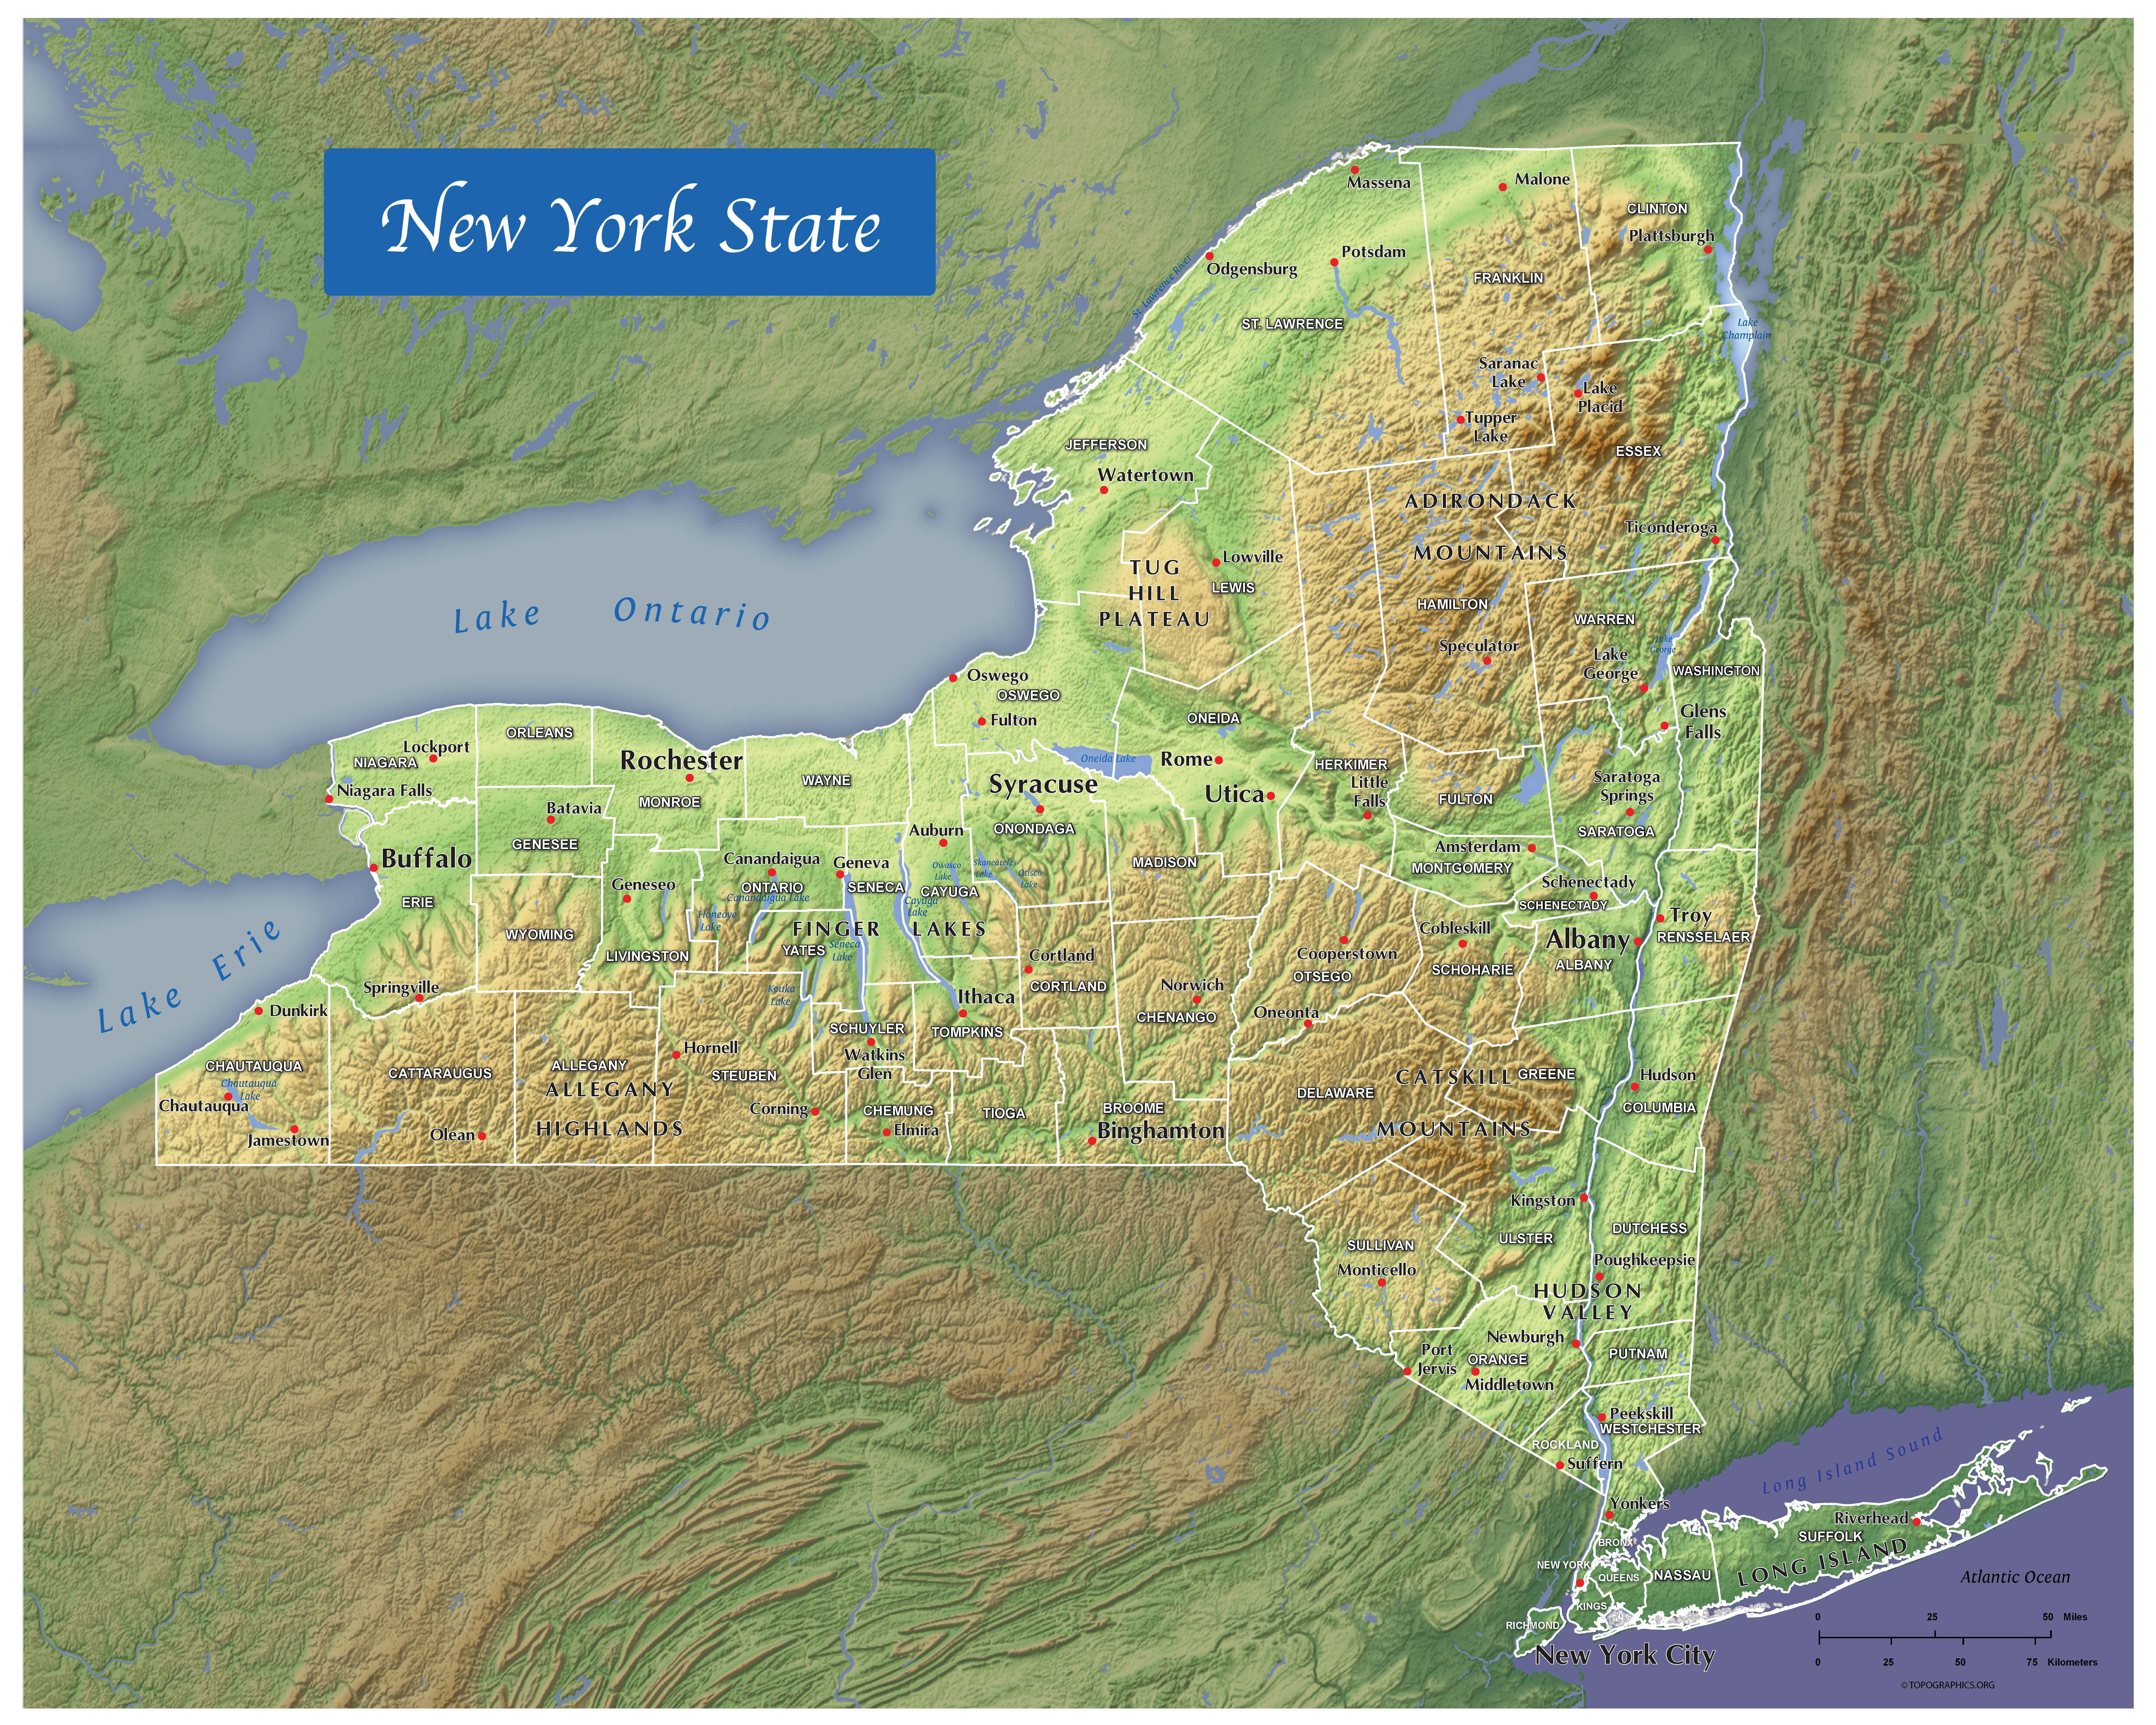 Data Obtained From The New York State Gis Clearinghouse Provided The Foundation To Create This Statewide Elevation Model Map For A Major Upstate University